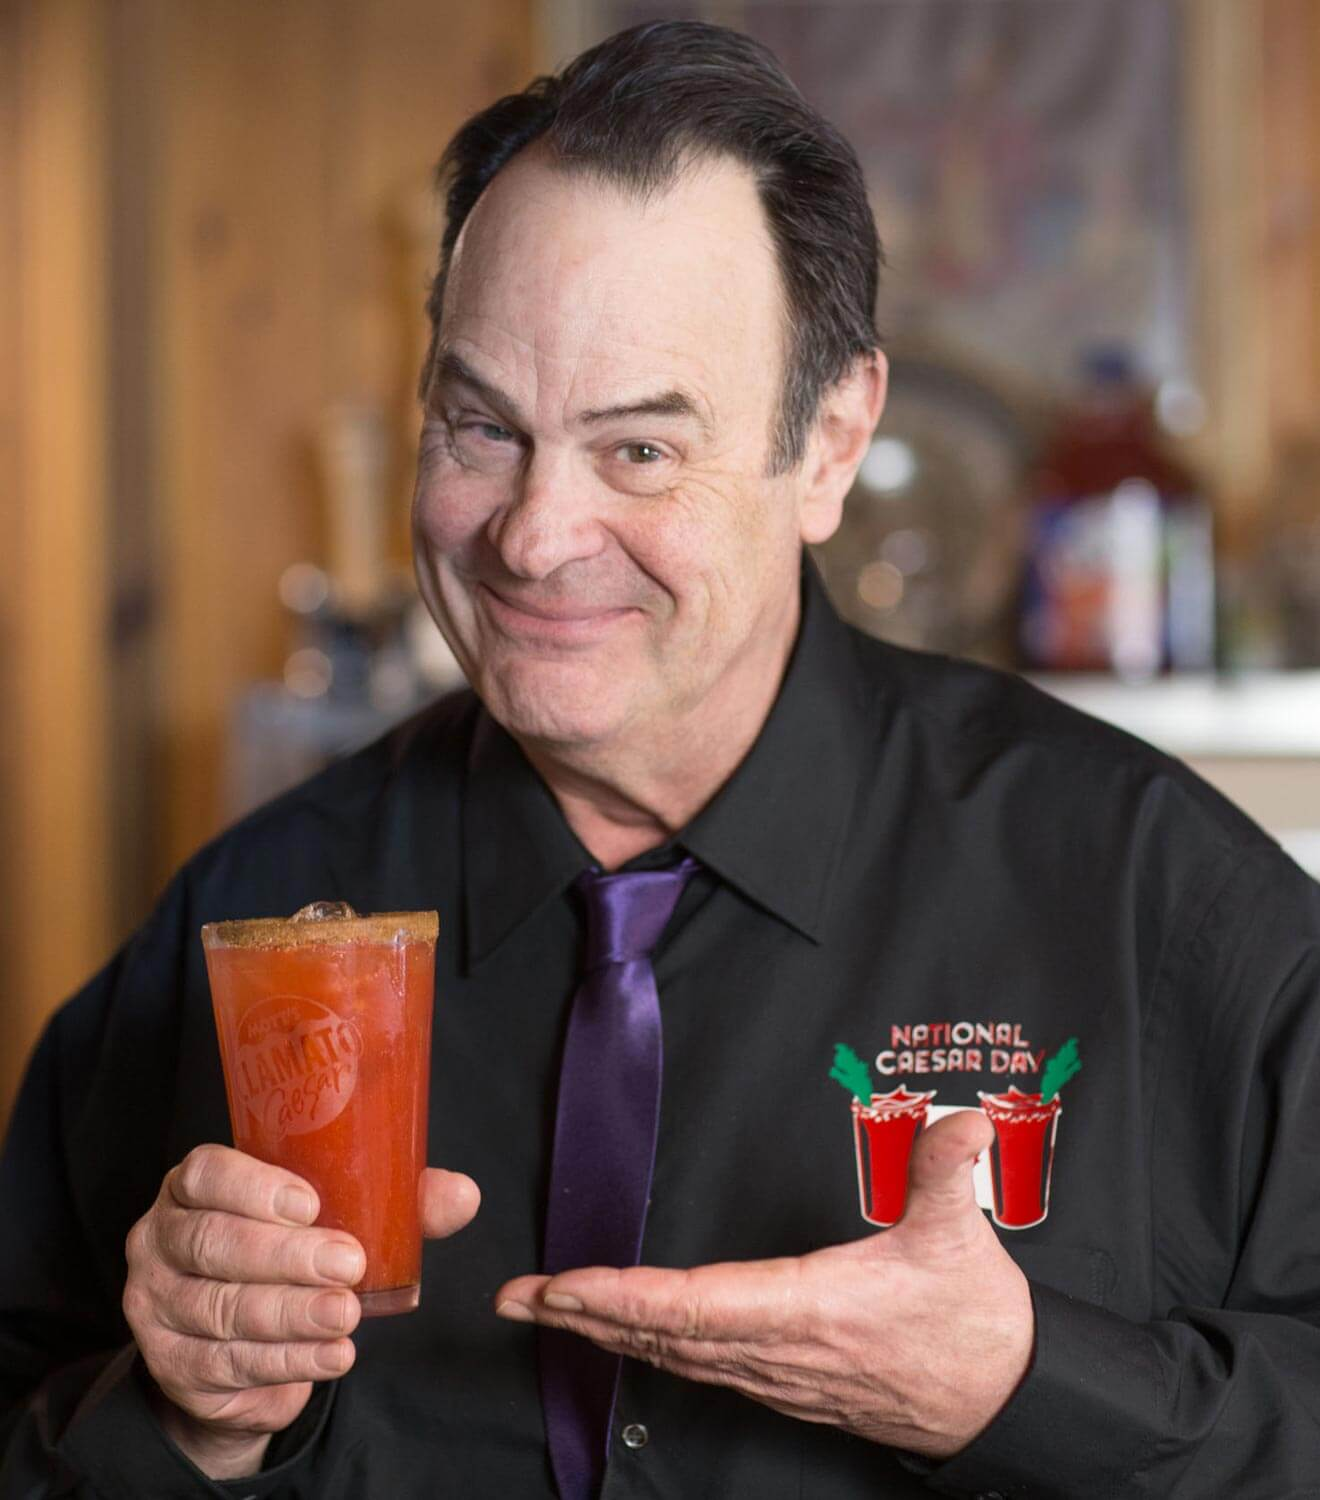 Dan Aykroyd's Golden Caesar, presenting the cocktail with a smile